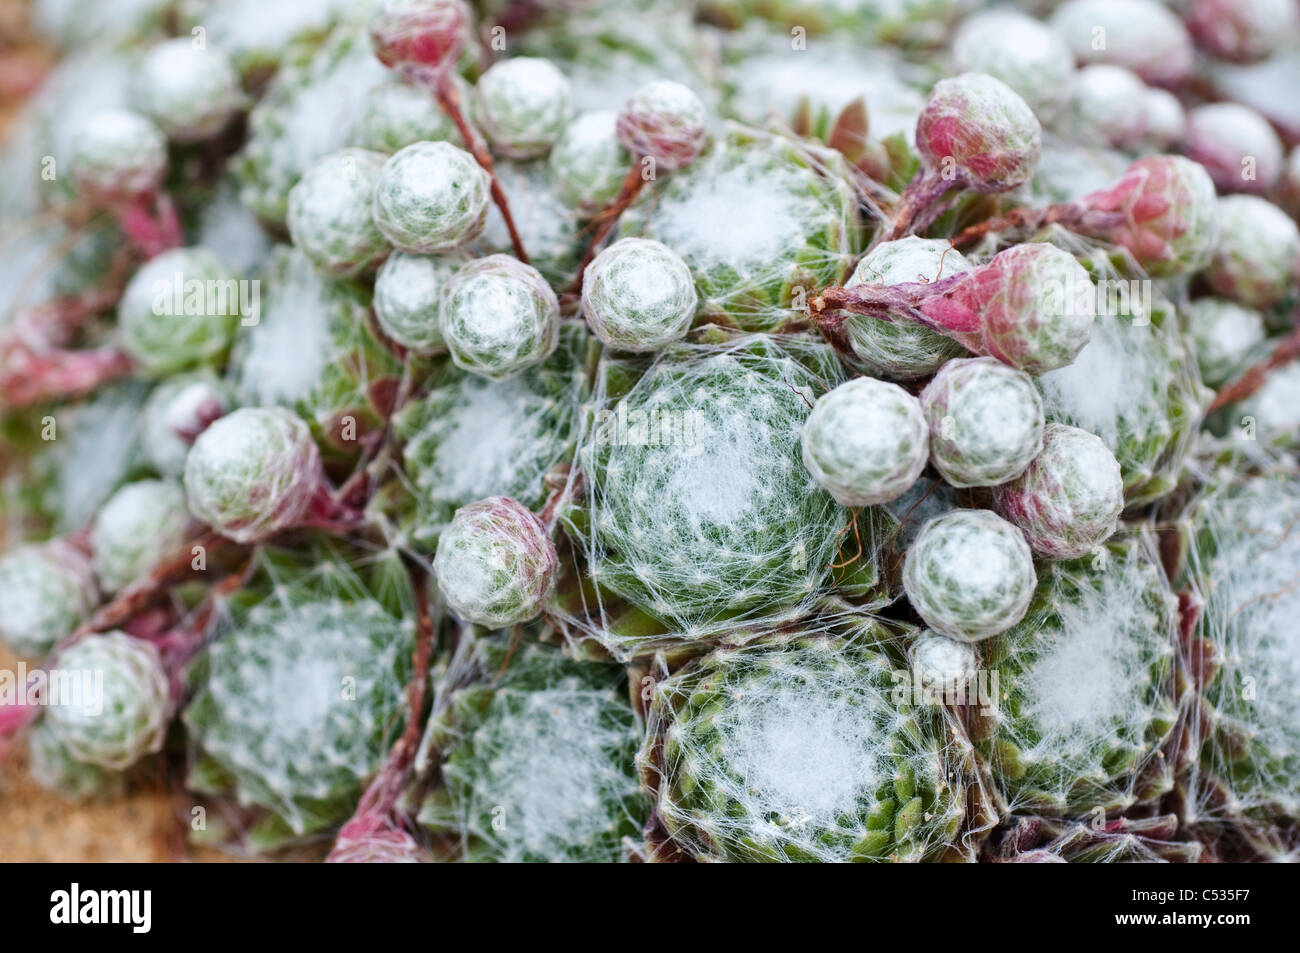 Sempervivum Spider's Lair - Houseleeks or Liveforever - Stock Image